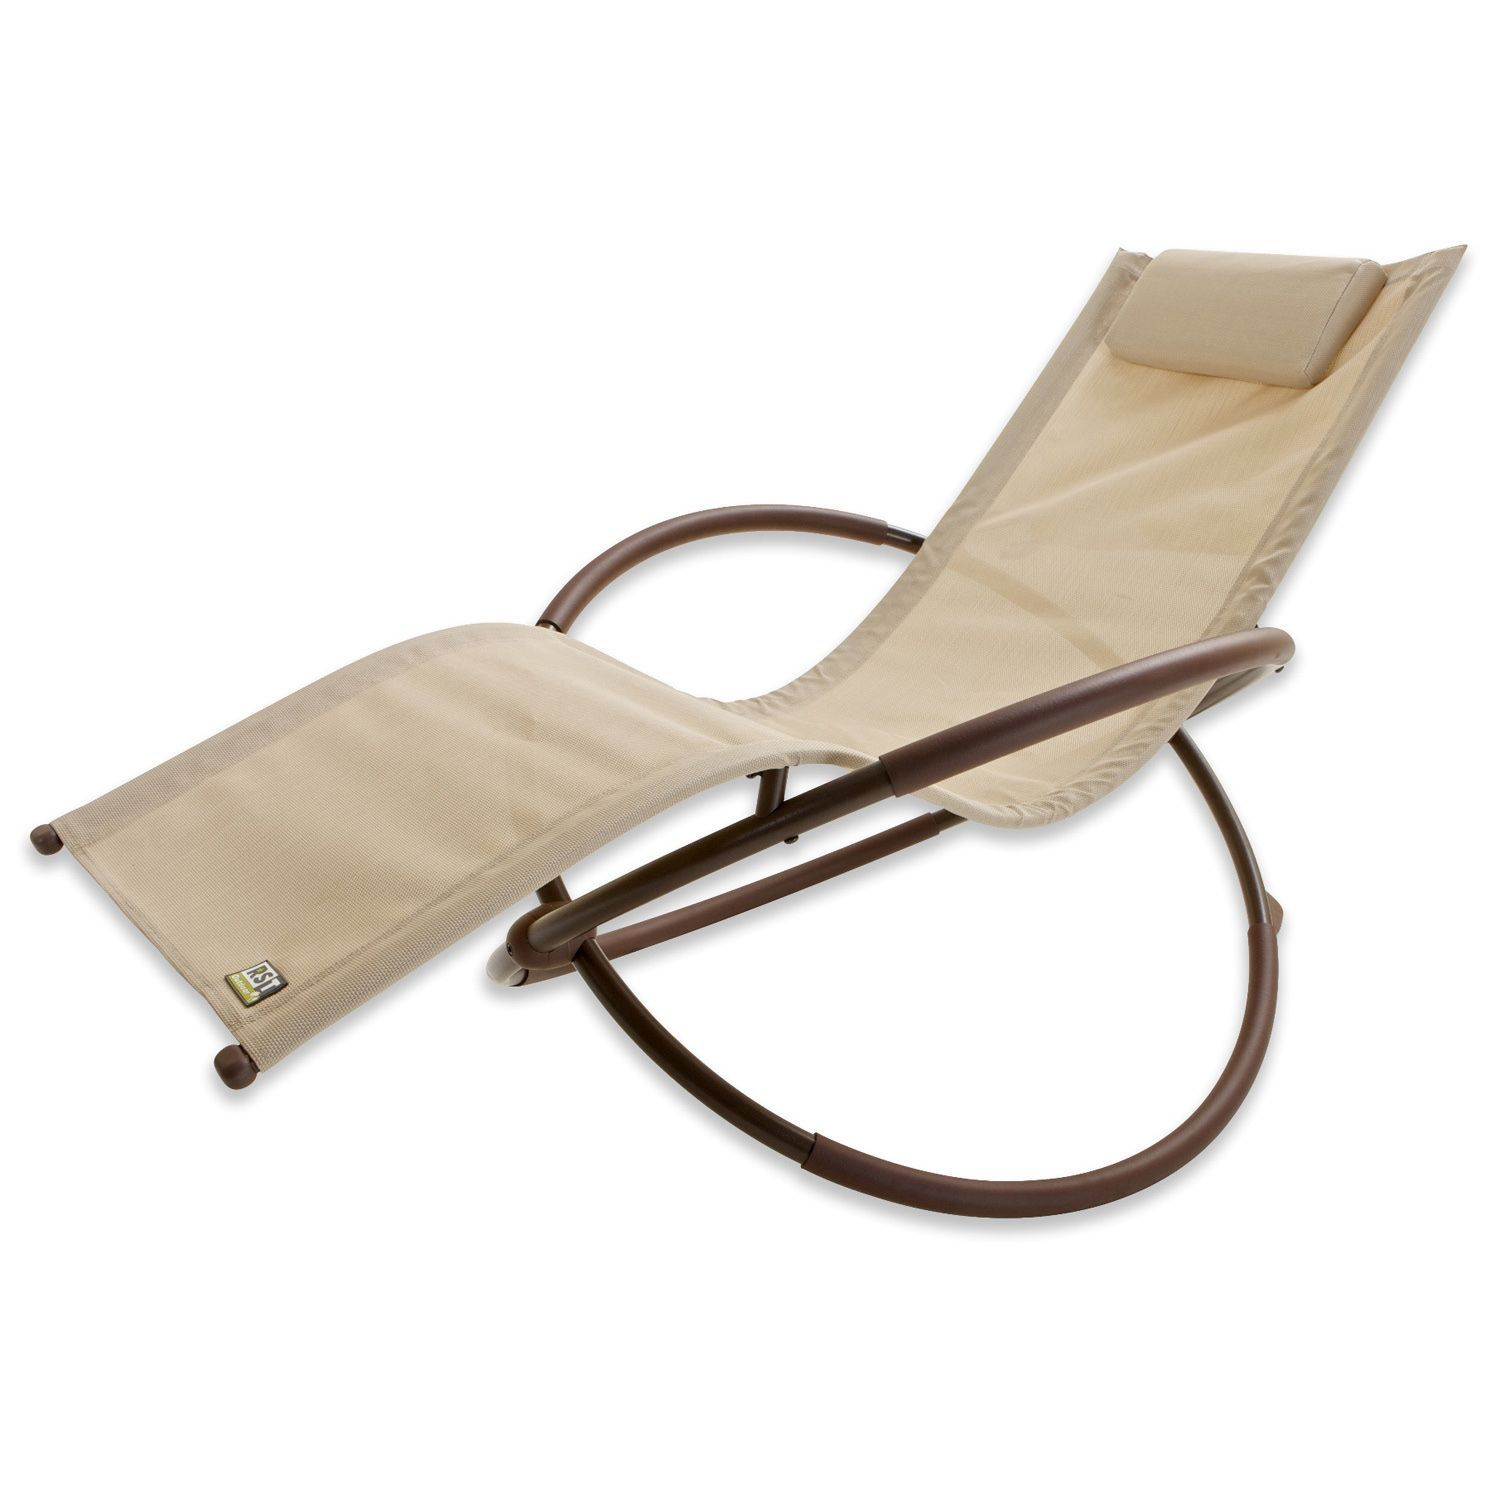 RST Brands Orbital Zero Gravity Patio Lounger Rocking Chair - Rst outdoor furniture